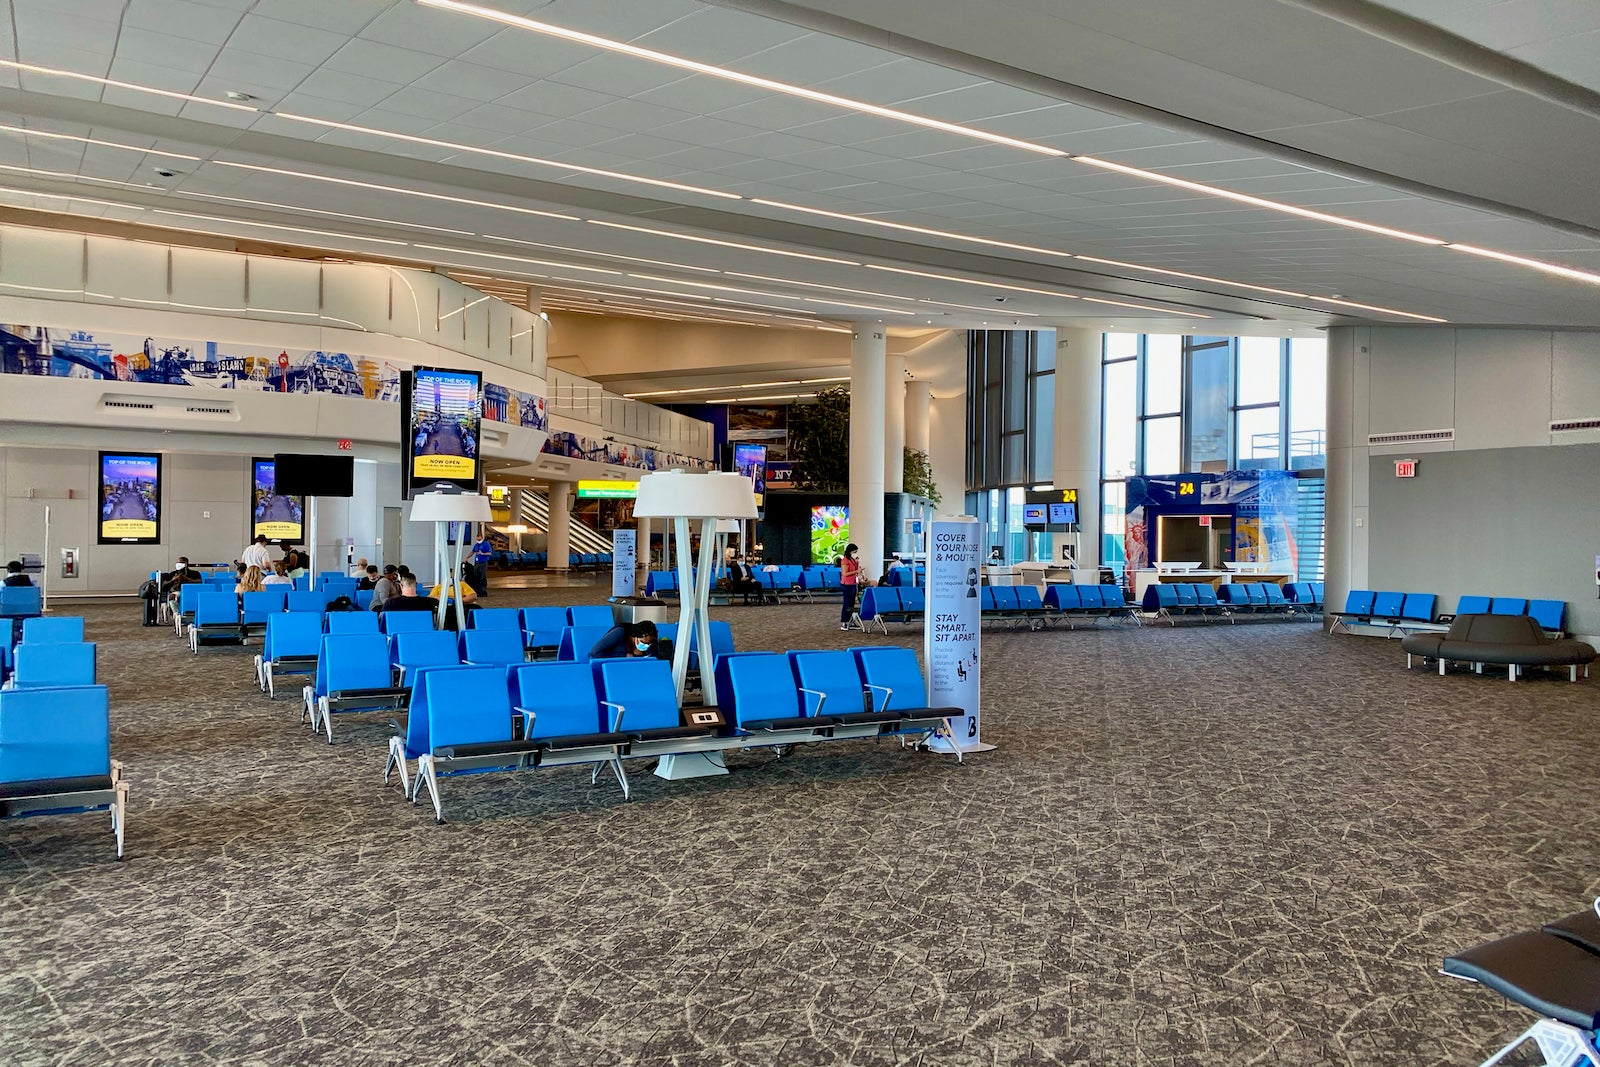 First look at American Airlines' brand-new terminal at LaGuardia Airport